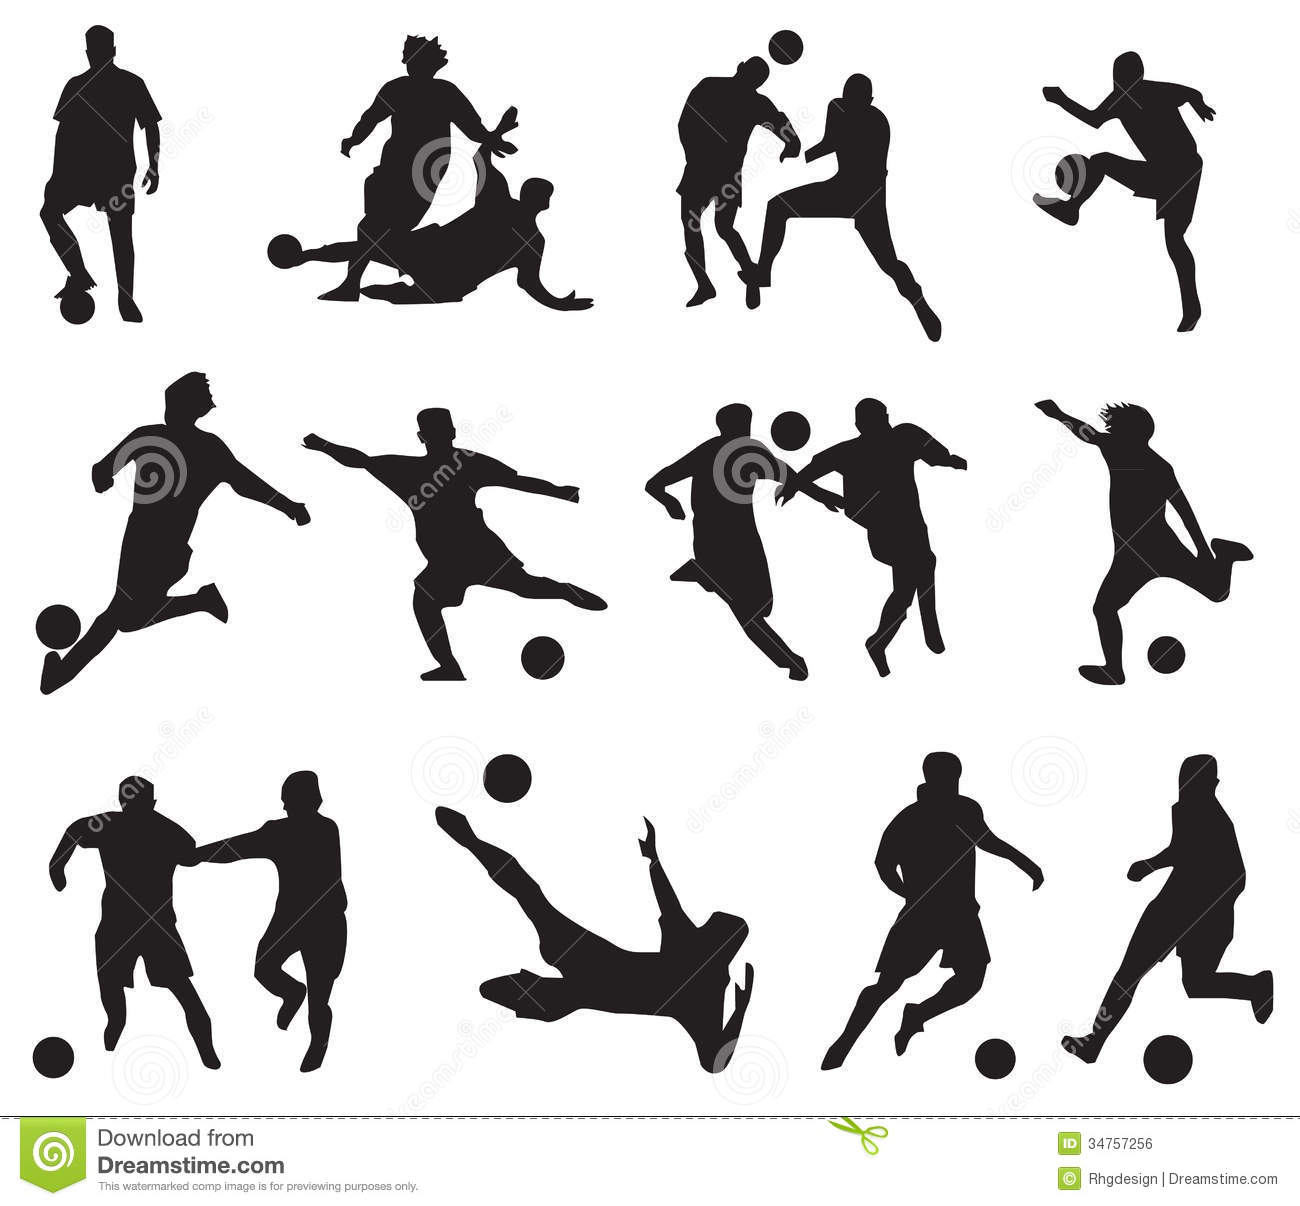 Silhouette Football Players Royalty Free Stock Image